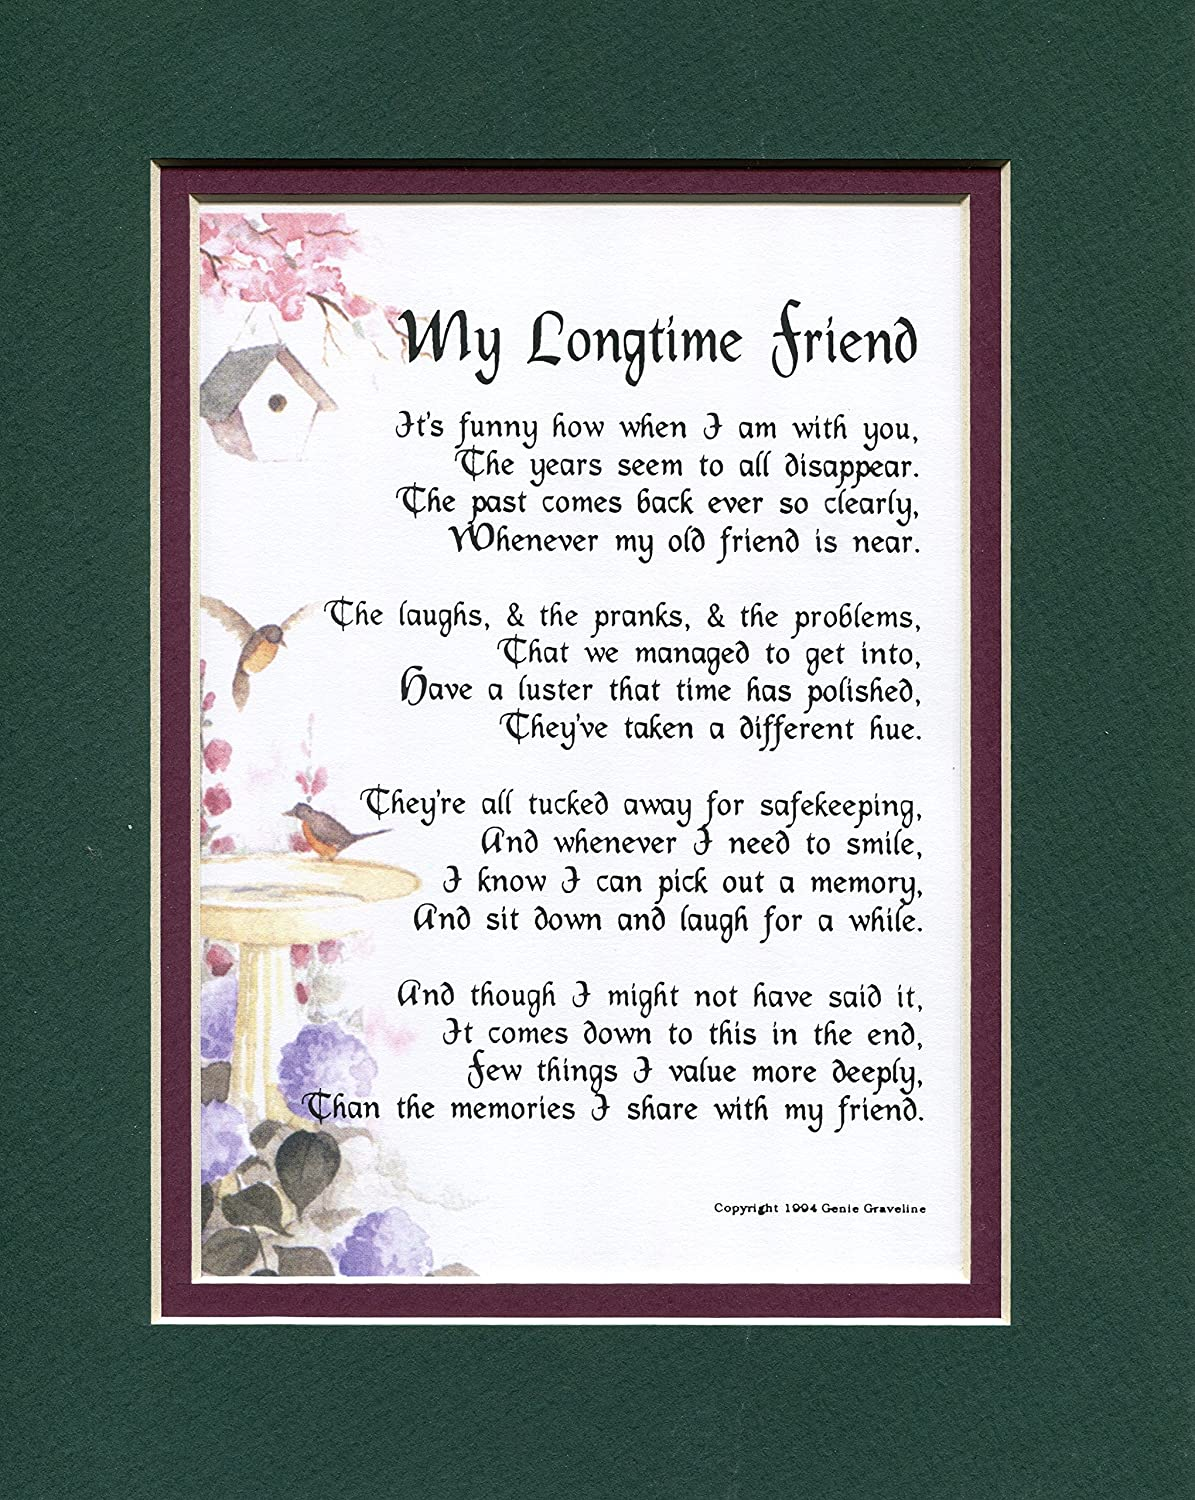 Amazon Com Friendship Poem Best Friend Verse 30th 40th 50th Friends Birthday Present Best Friend Poem Longtime Friend Childhood Friend Home Kitchen Friends and family are important to our wellbeing. friendship poem best friend verse 30th 40th 50th friends birthday present best friend poem longtime friend childhood friend